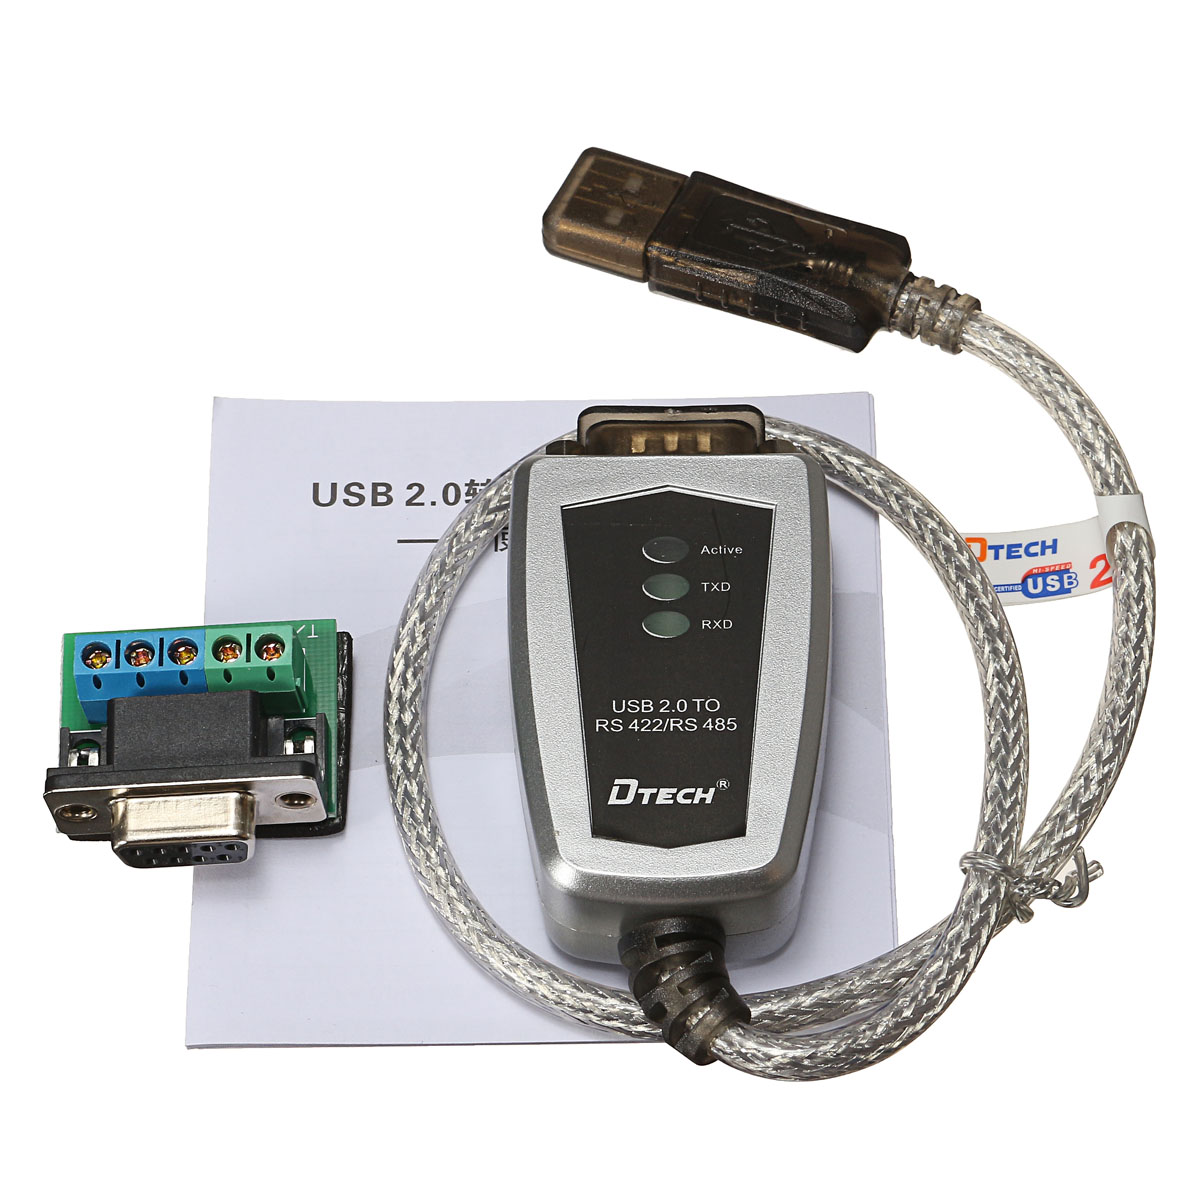 USB to RS485 RS422 Serial DB9 to Termi Serial Converter Adapter Cable